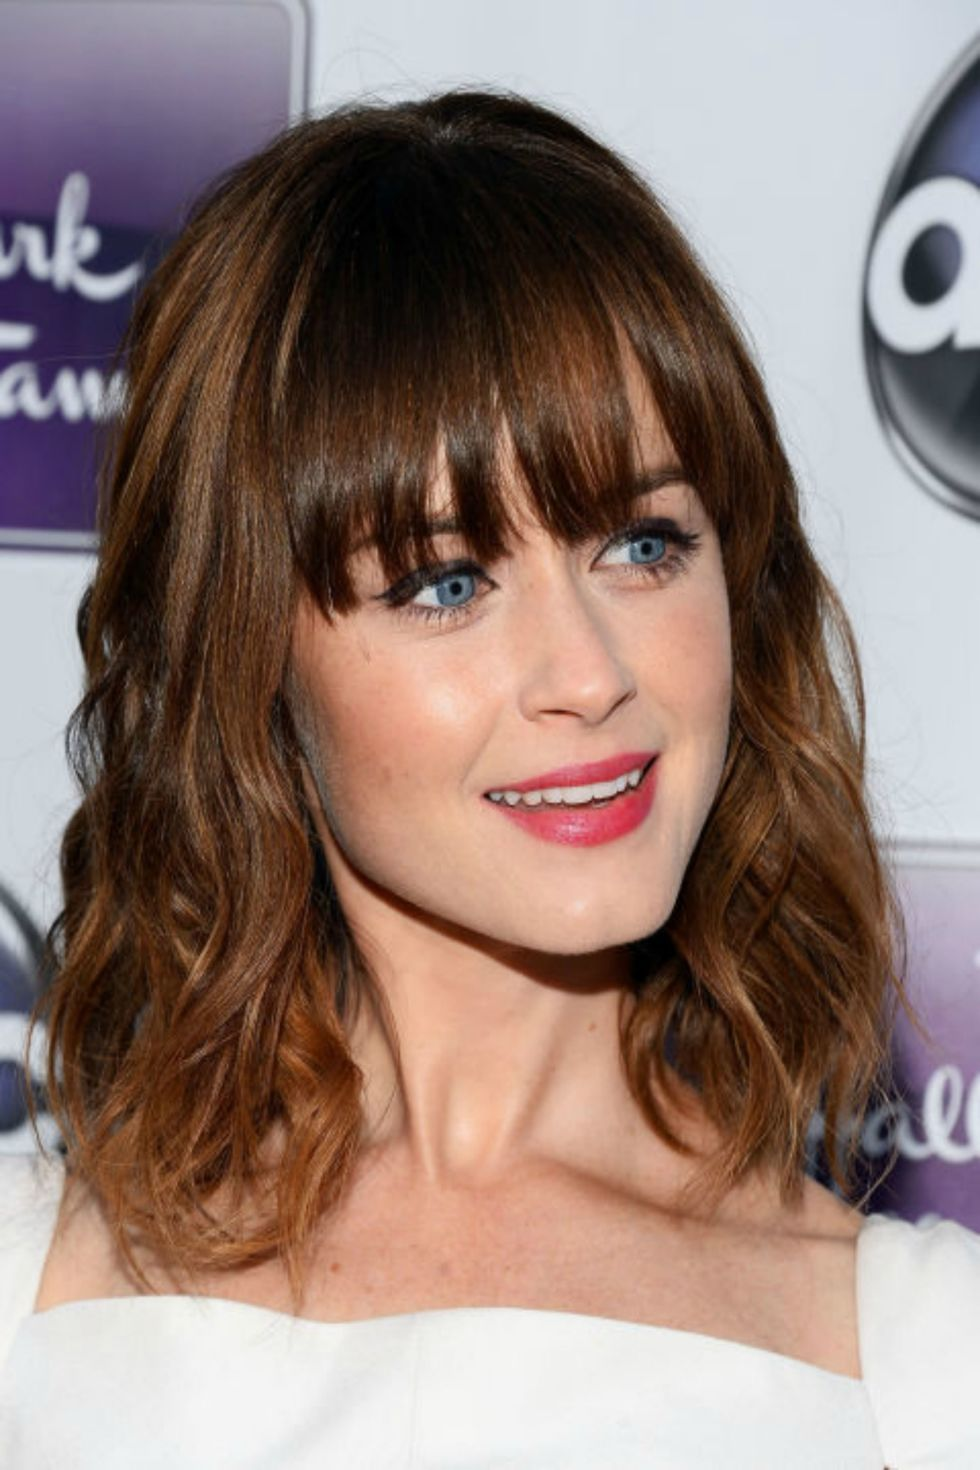 Admirable 46 Great Medium Hairstyles Haircuts For Mid Length Hair Short Hairstyles Gunalazisus